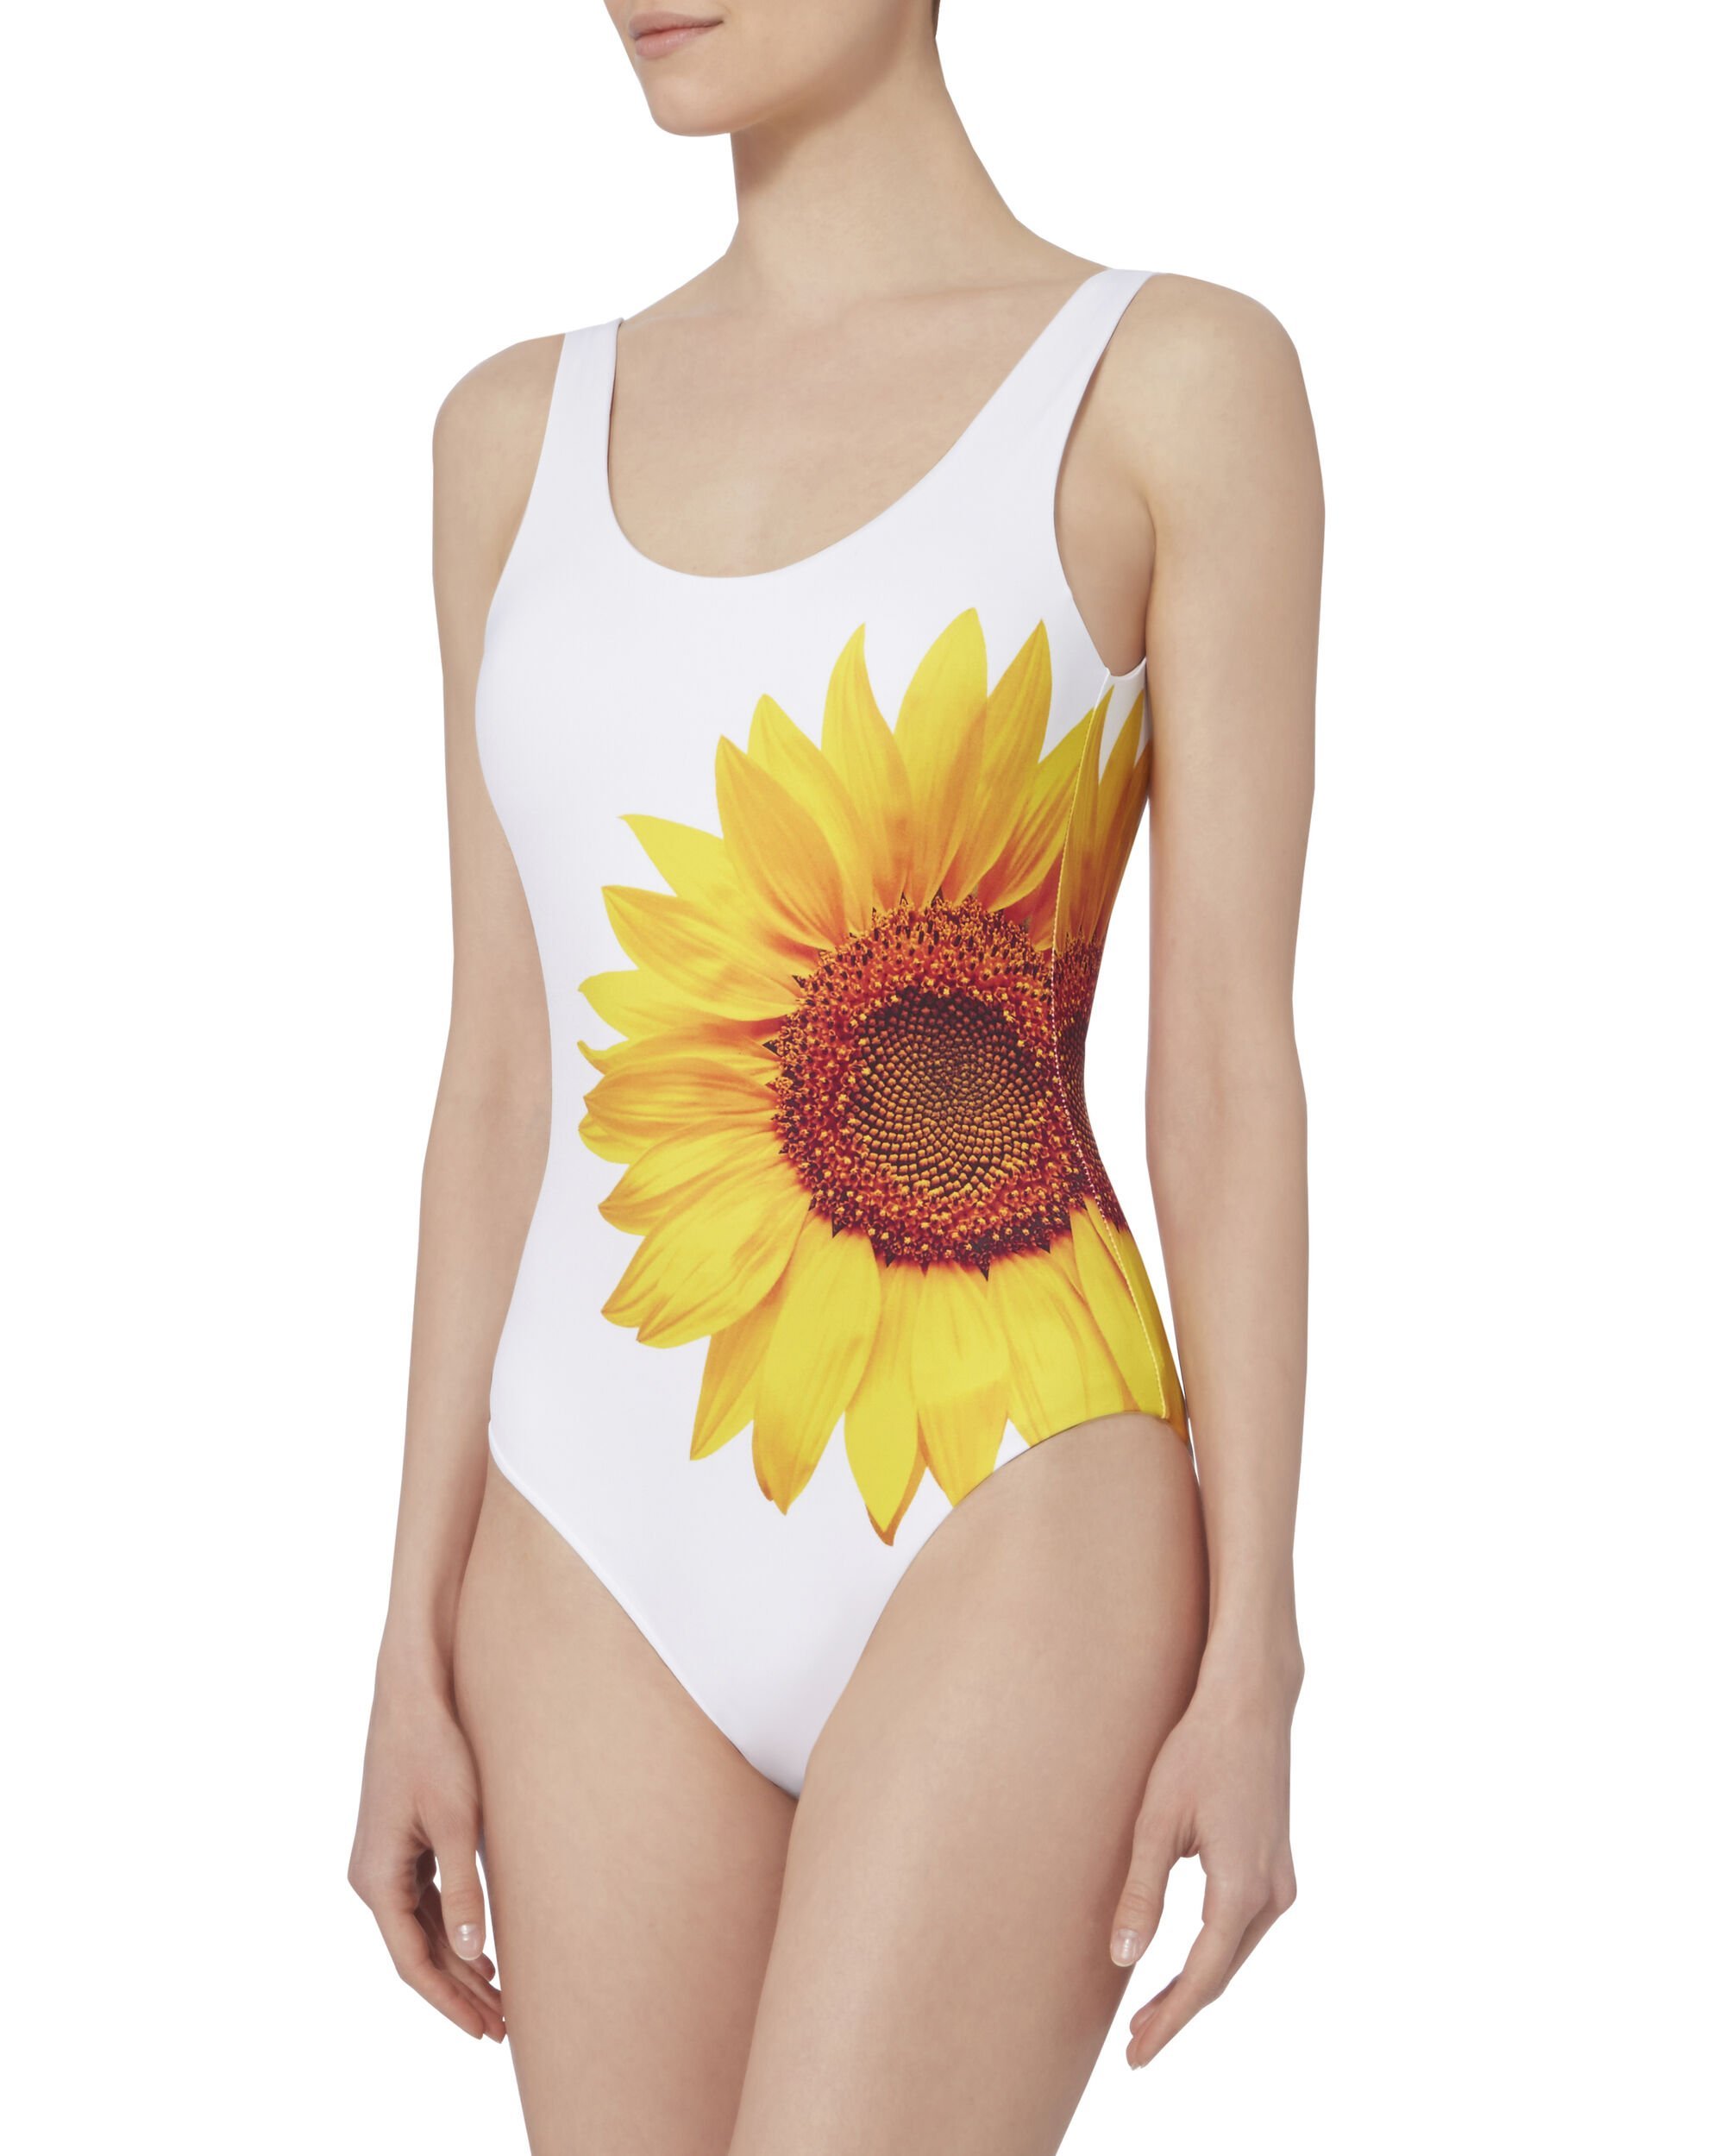 Kelly Sunflower Print One Piece Swimsuit, MISS SUNSHINE, hi-res